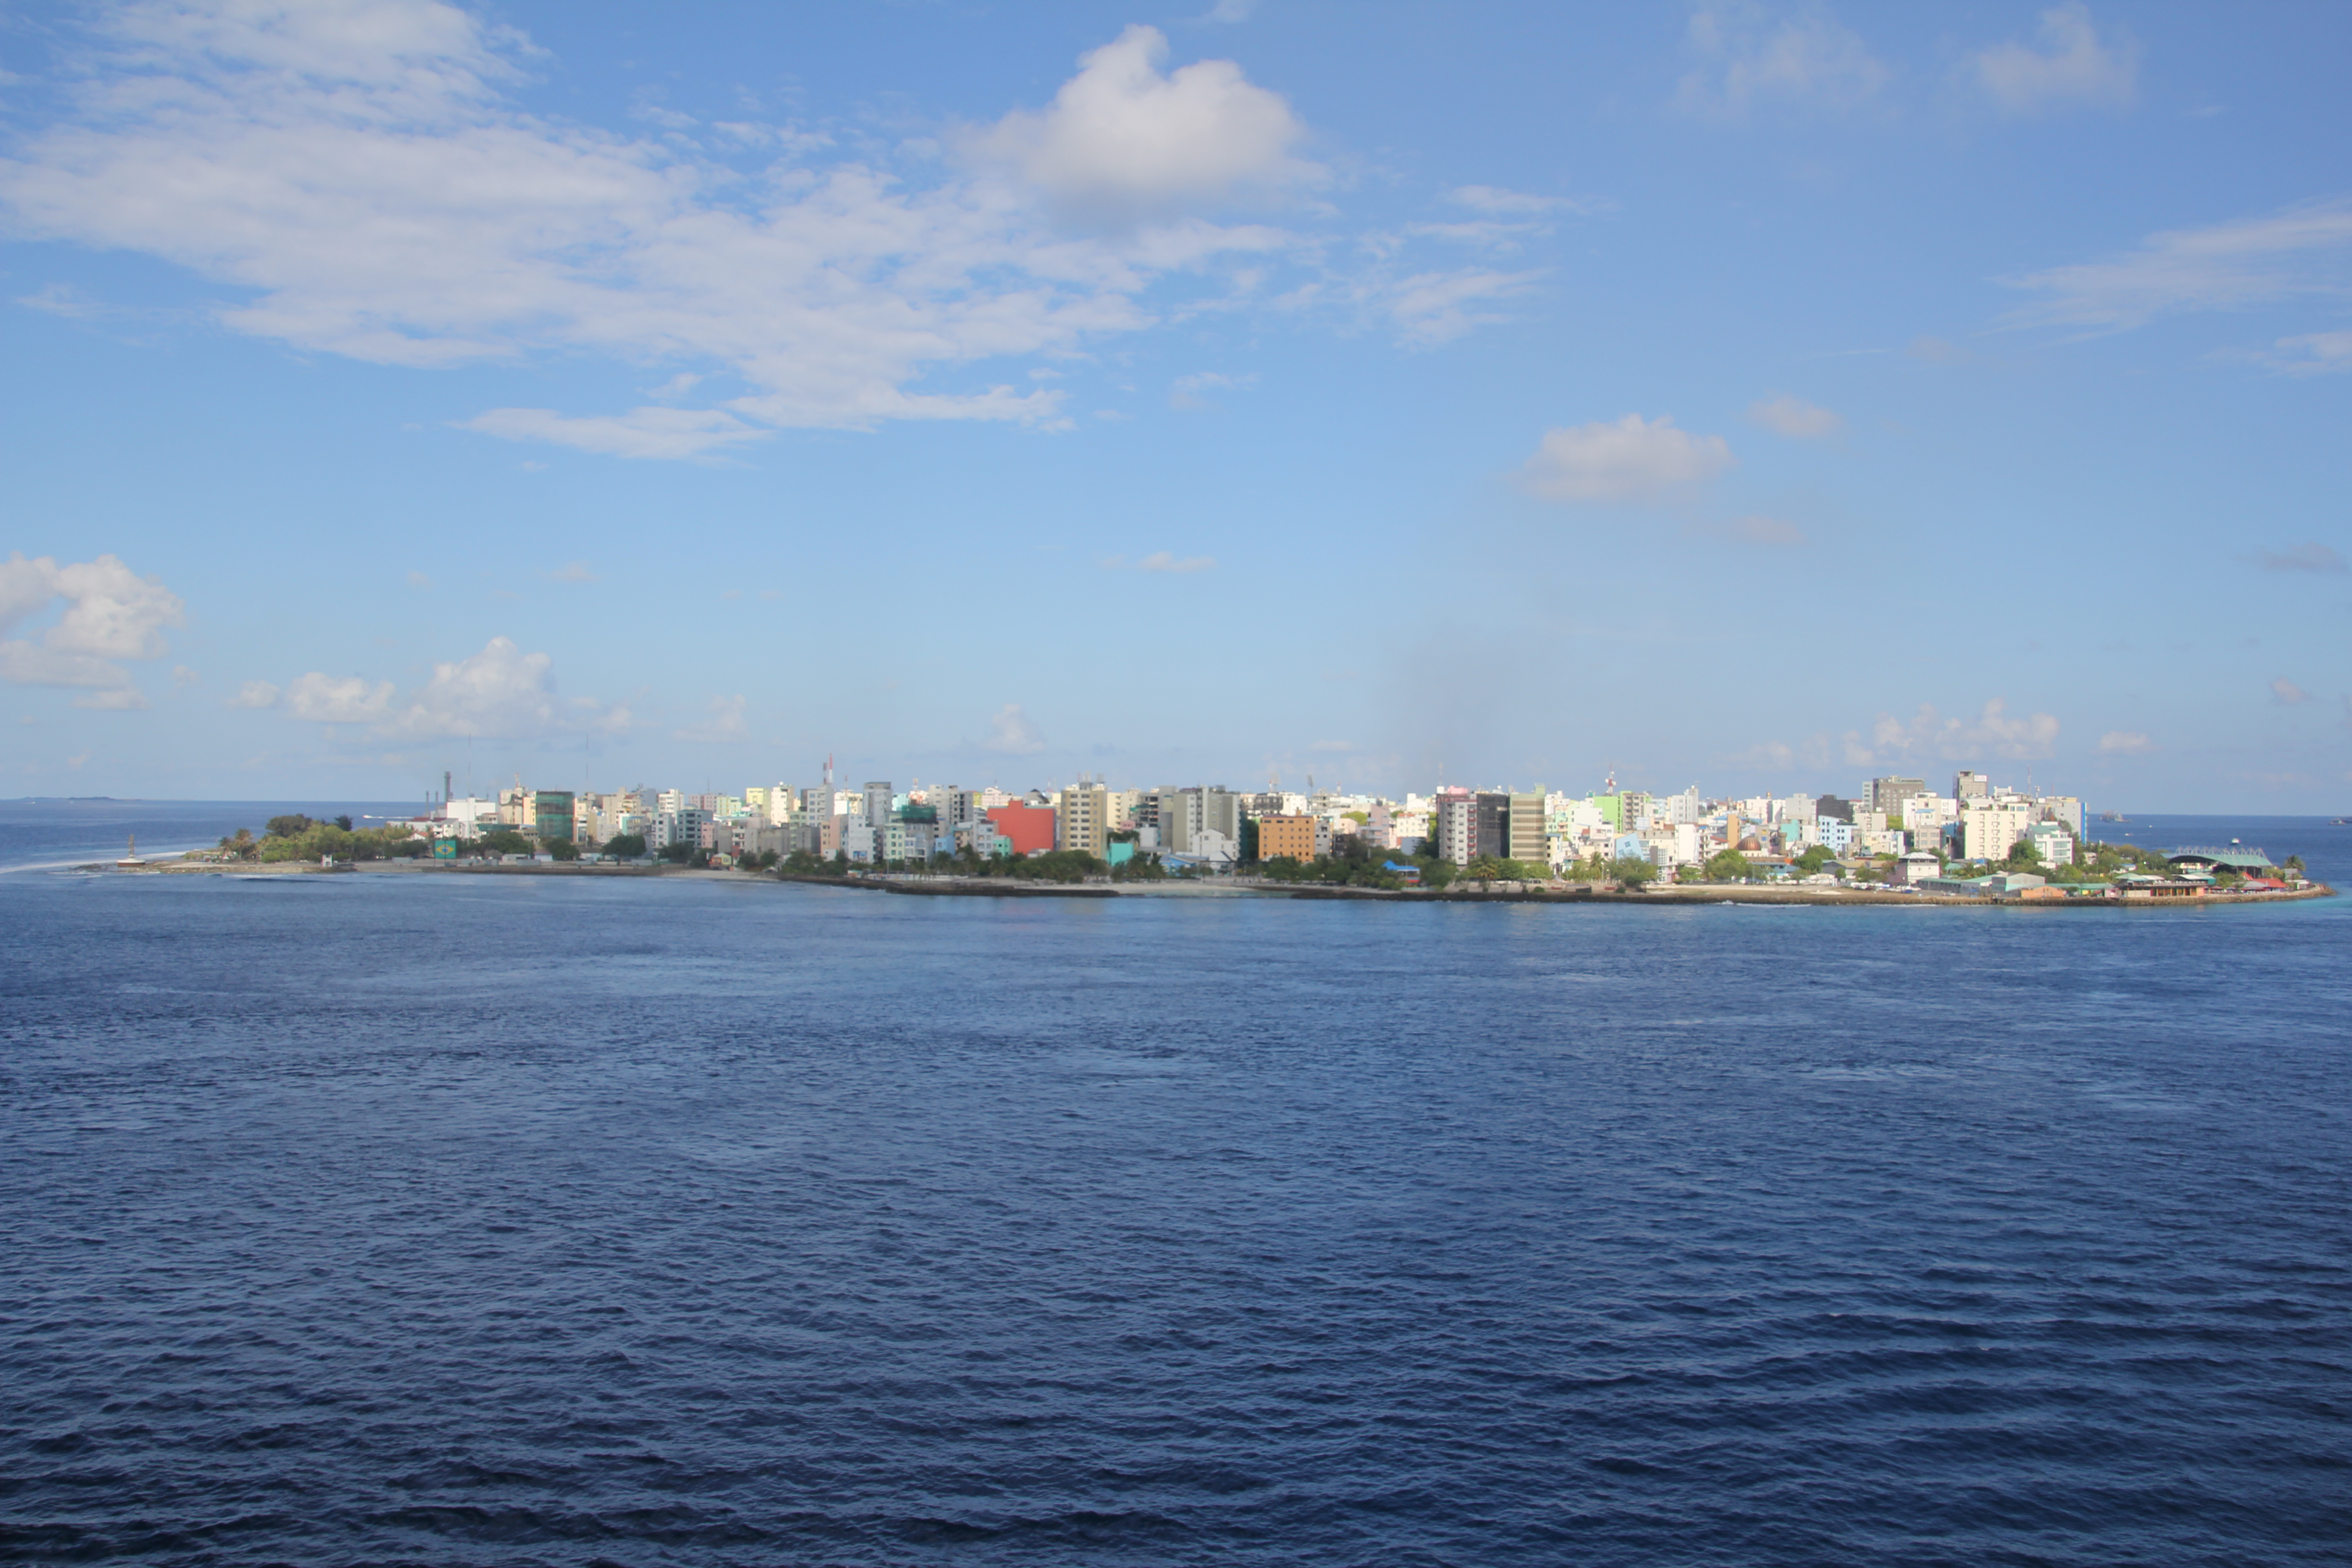 National Governments Undps Climate Change Adaptation Portal Millet Flagship Intelligent Household Water Purifiers Supporting Vulnerable Communities In Maldives To Manage Induced Shortages